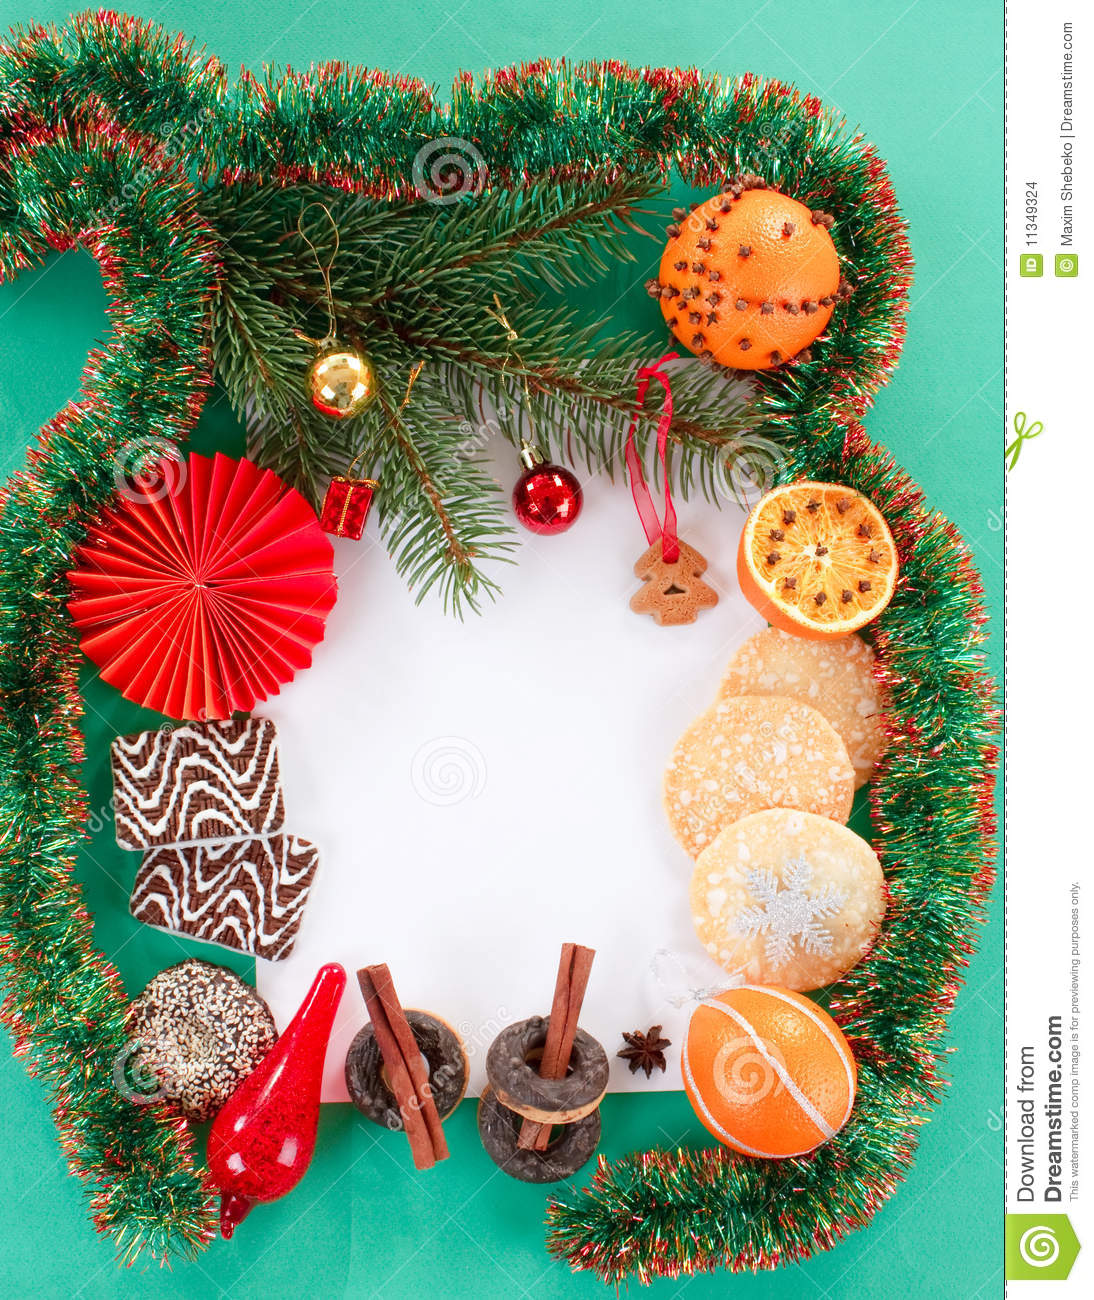 Decorazione di natale fotografia stock immagine di for Decorazione be u